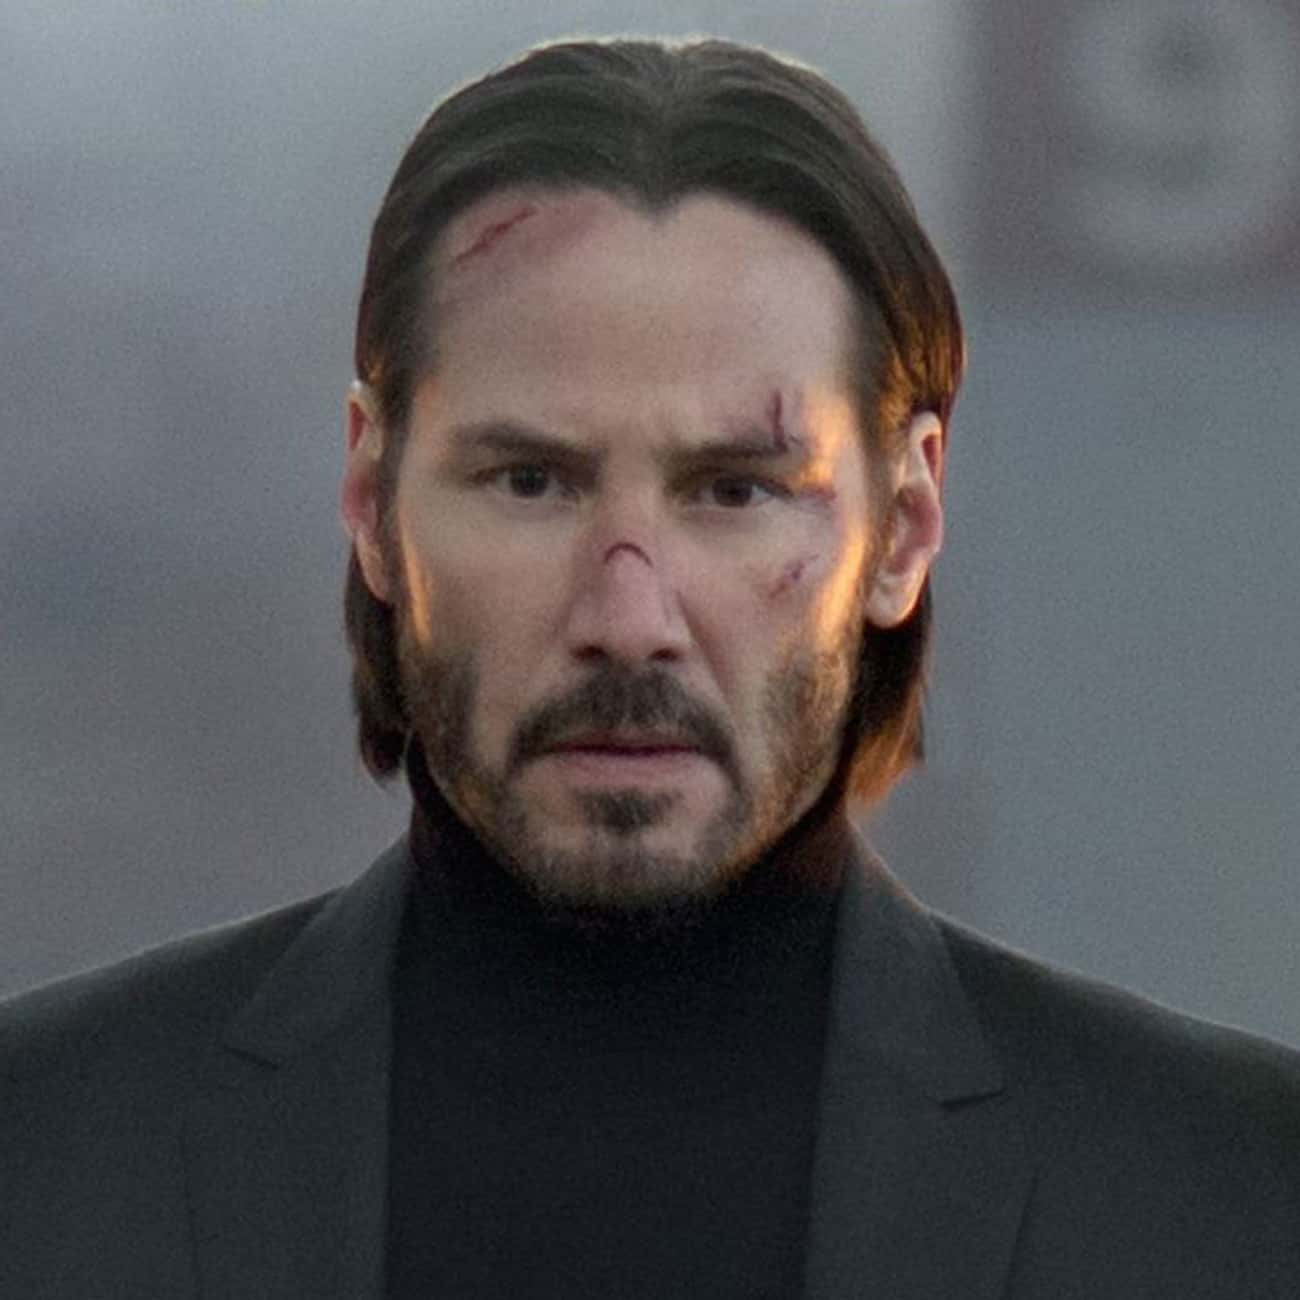 It's Personal is listed (or ranked) 3 on the list John Wick Movie Quotes